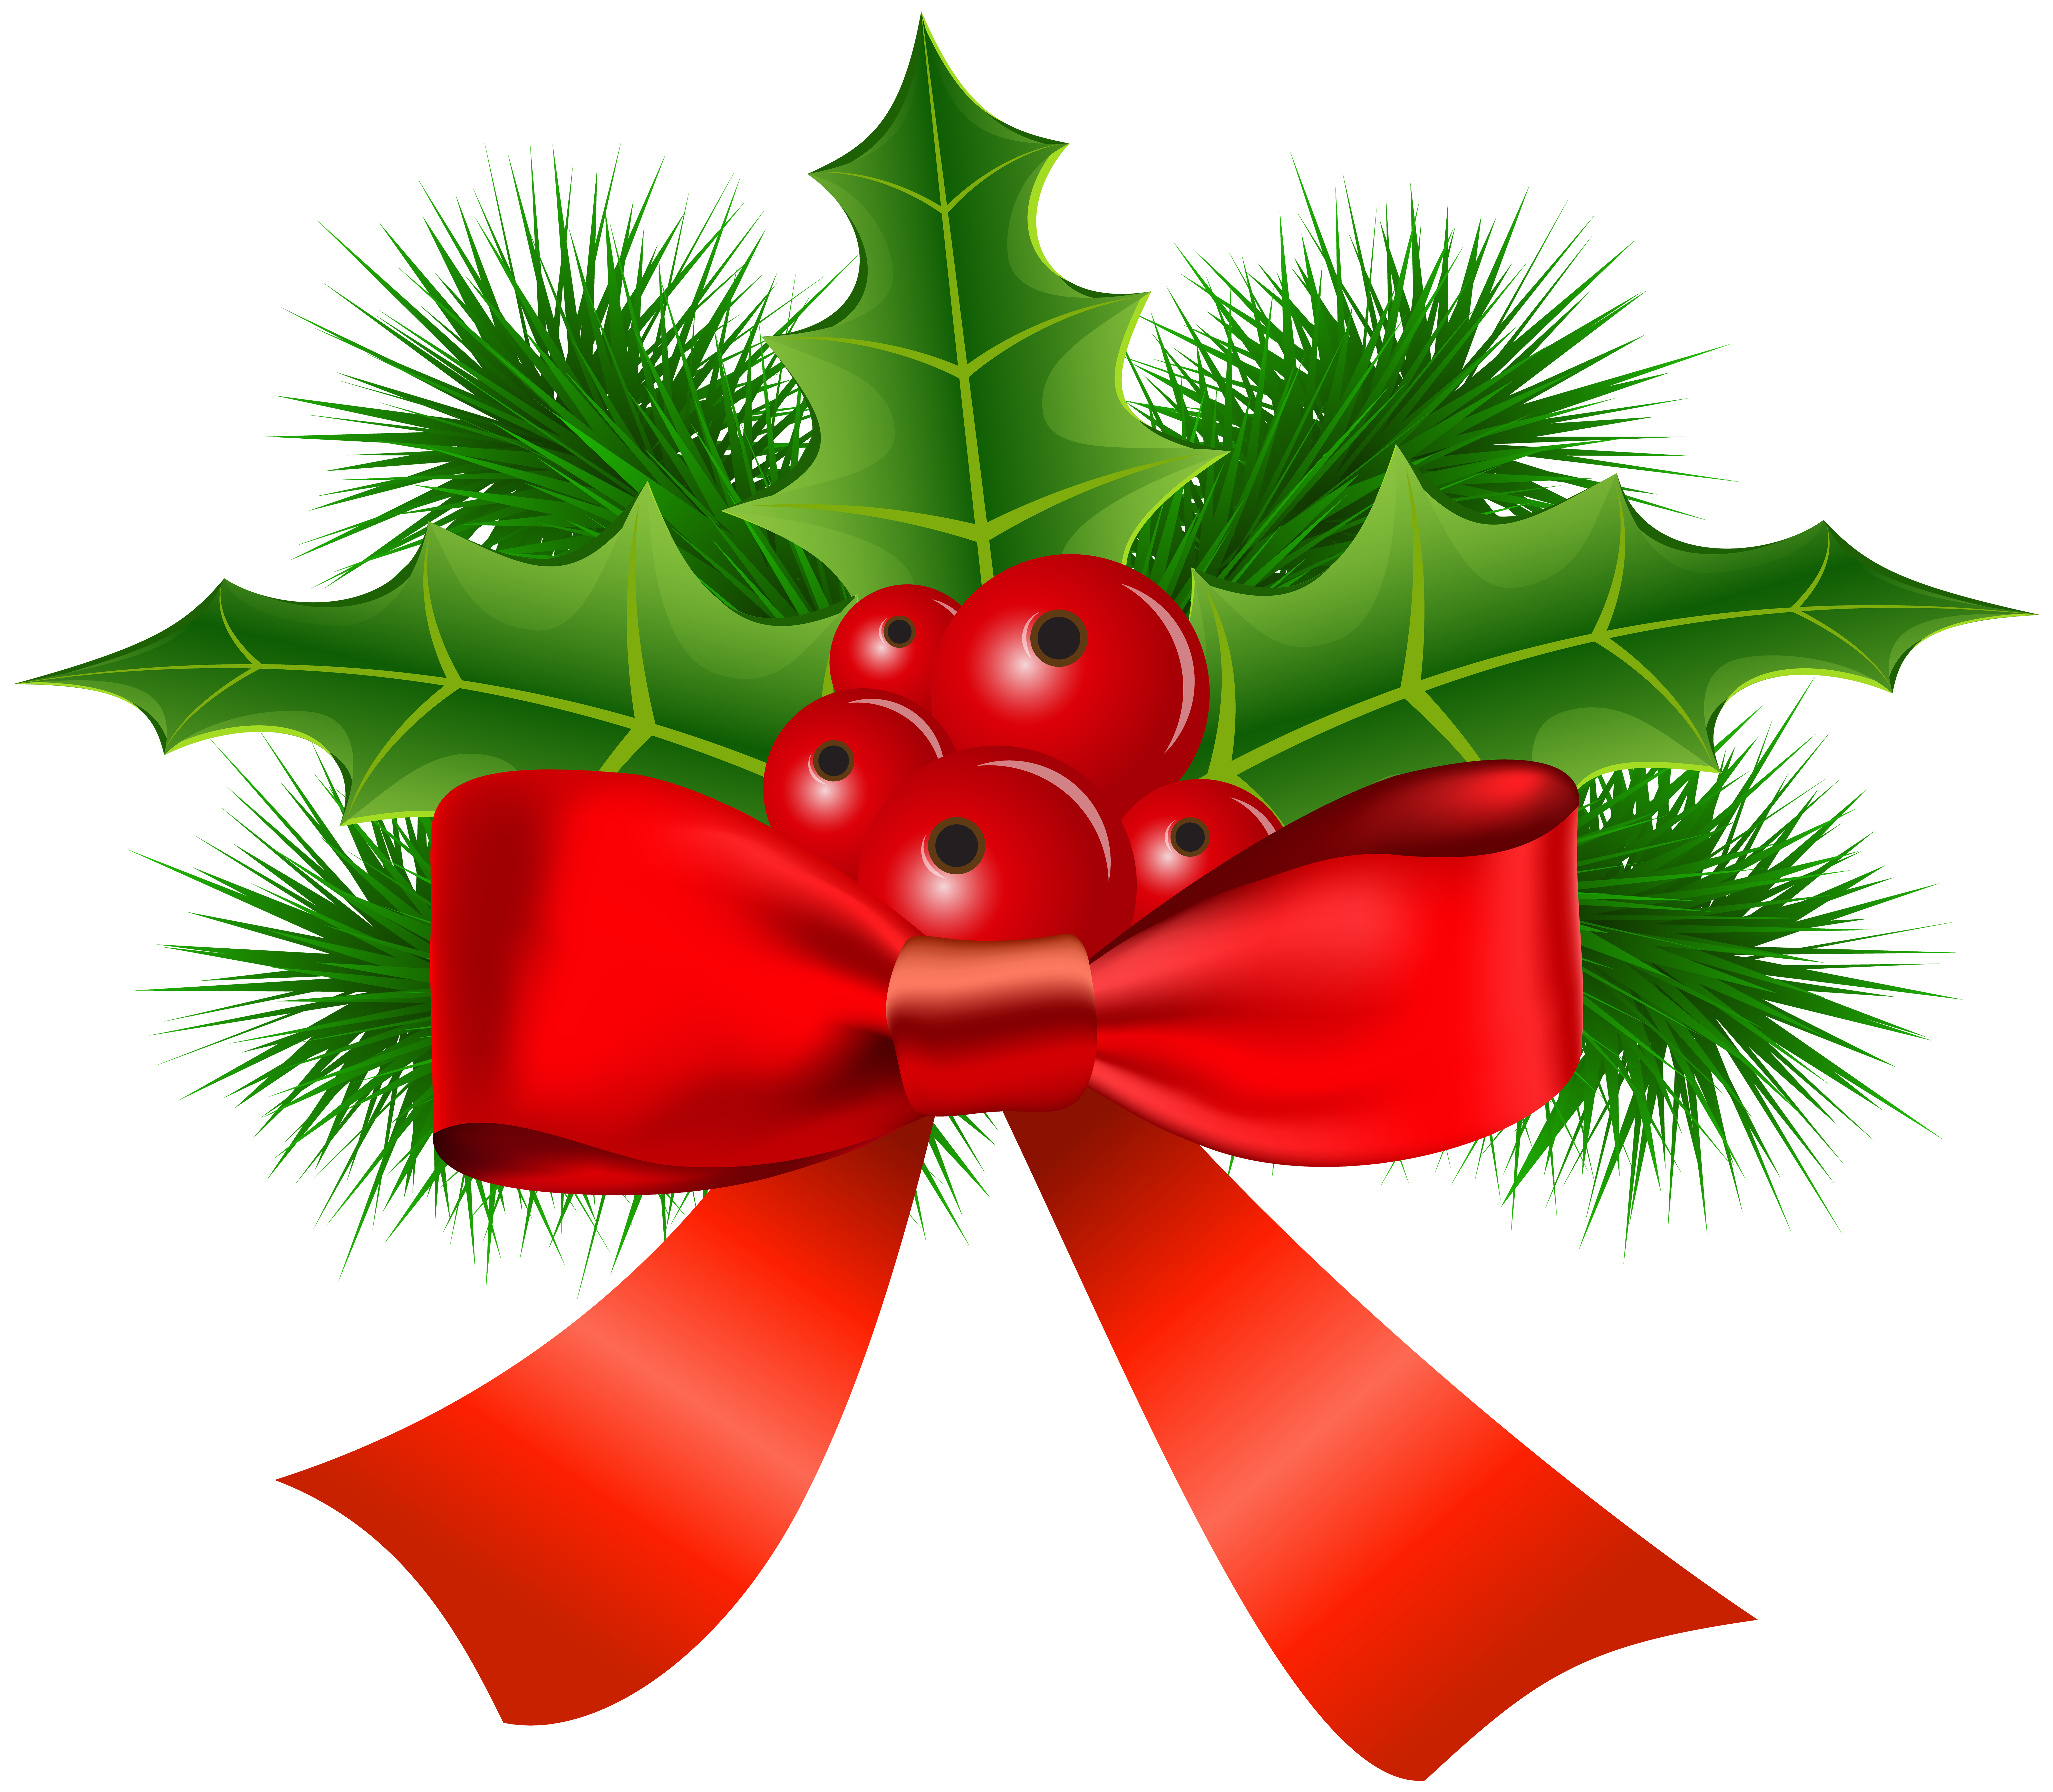 8000x6982 Christmas Holly Transparent Png Clip Artu200b Gallery Yopriceville